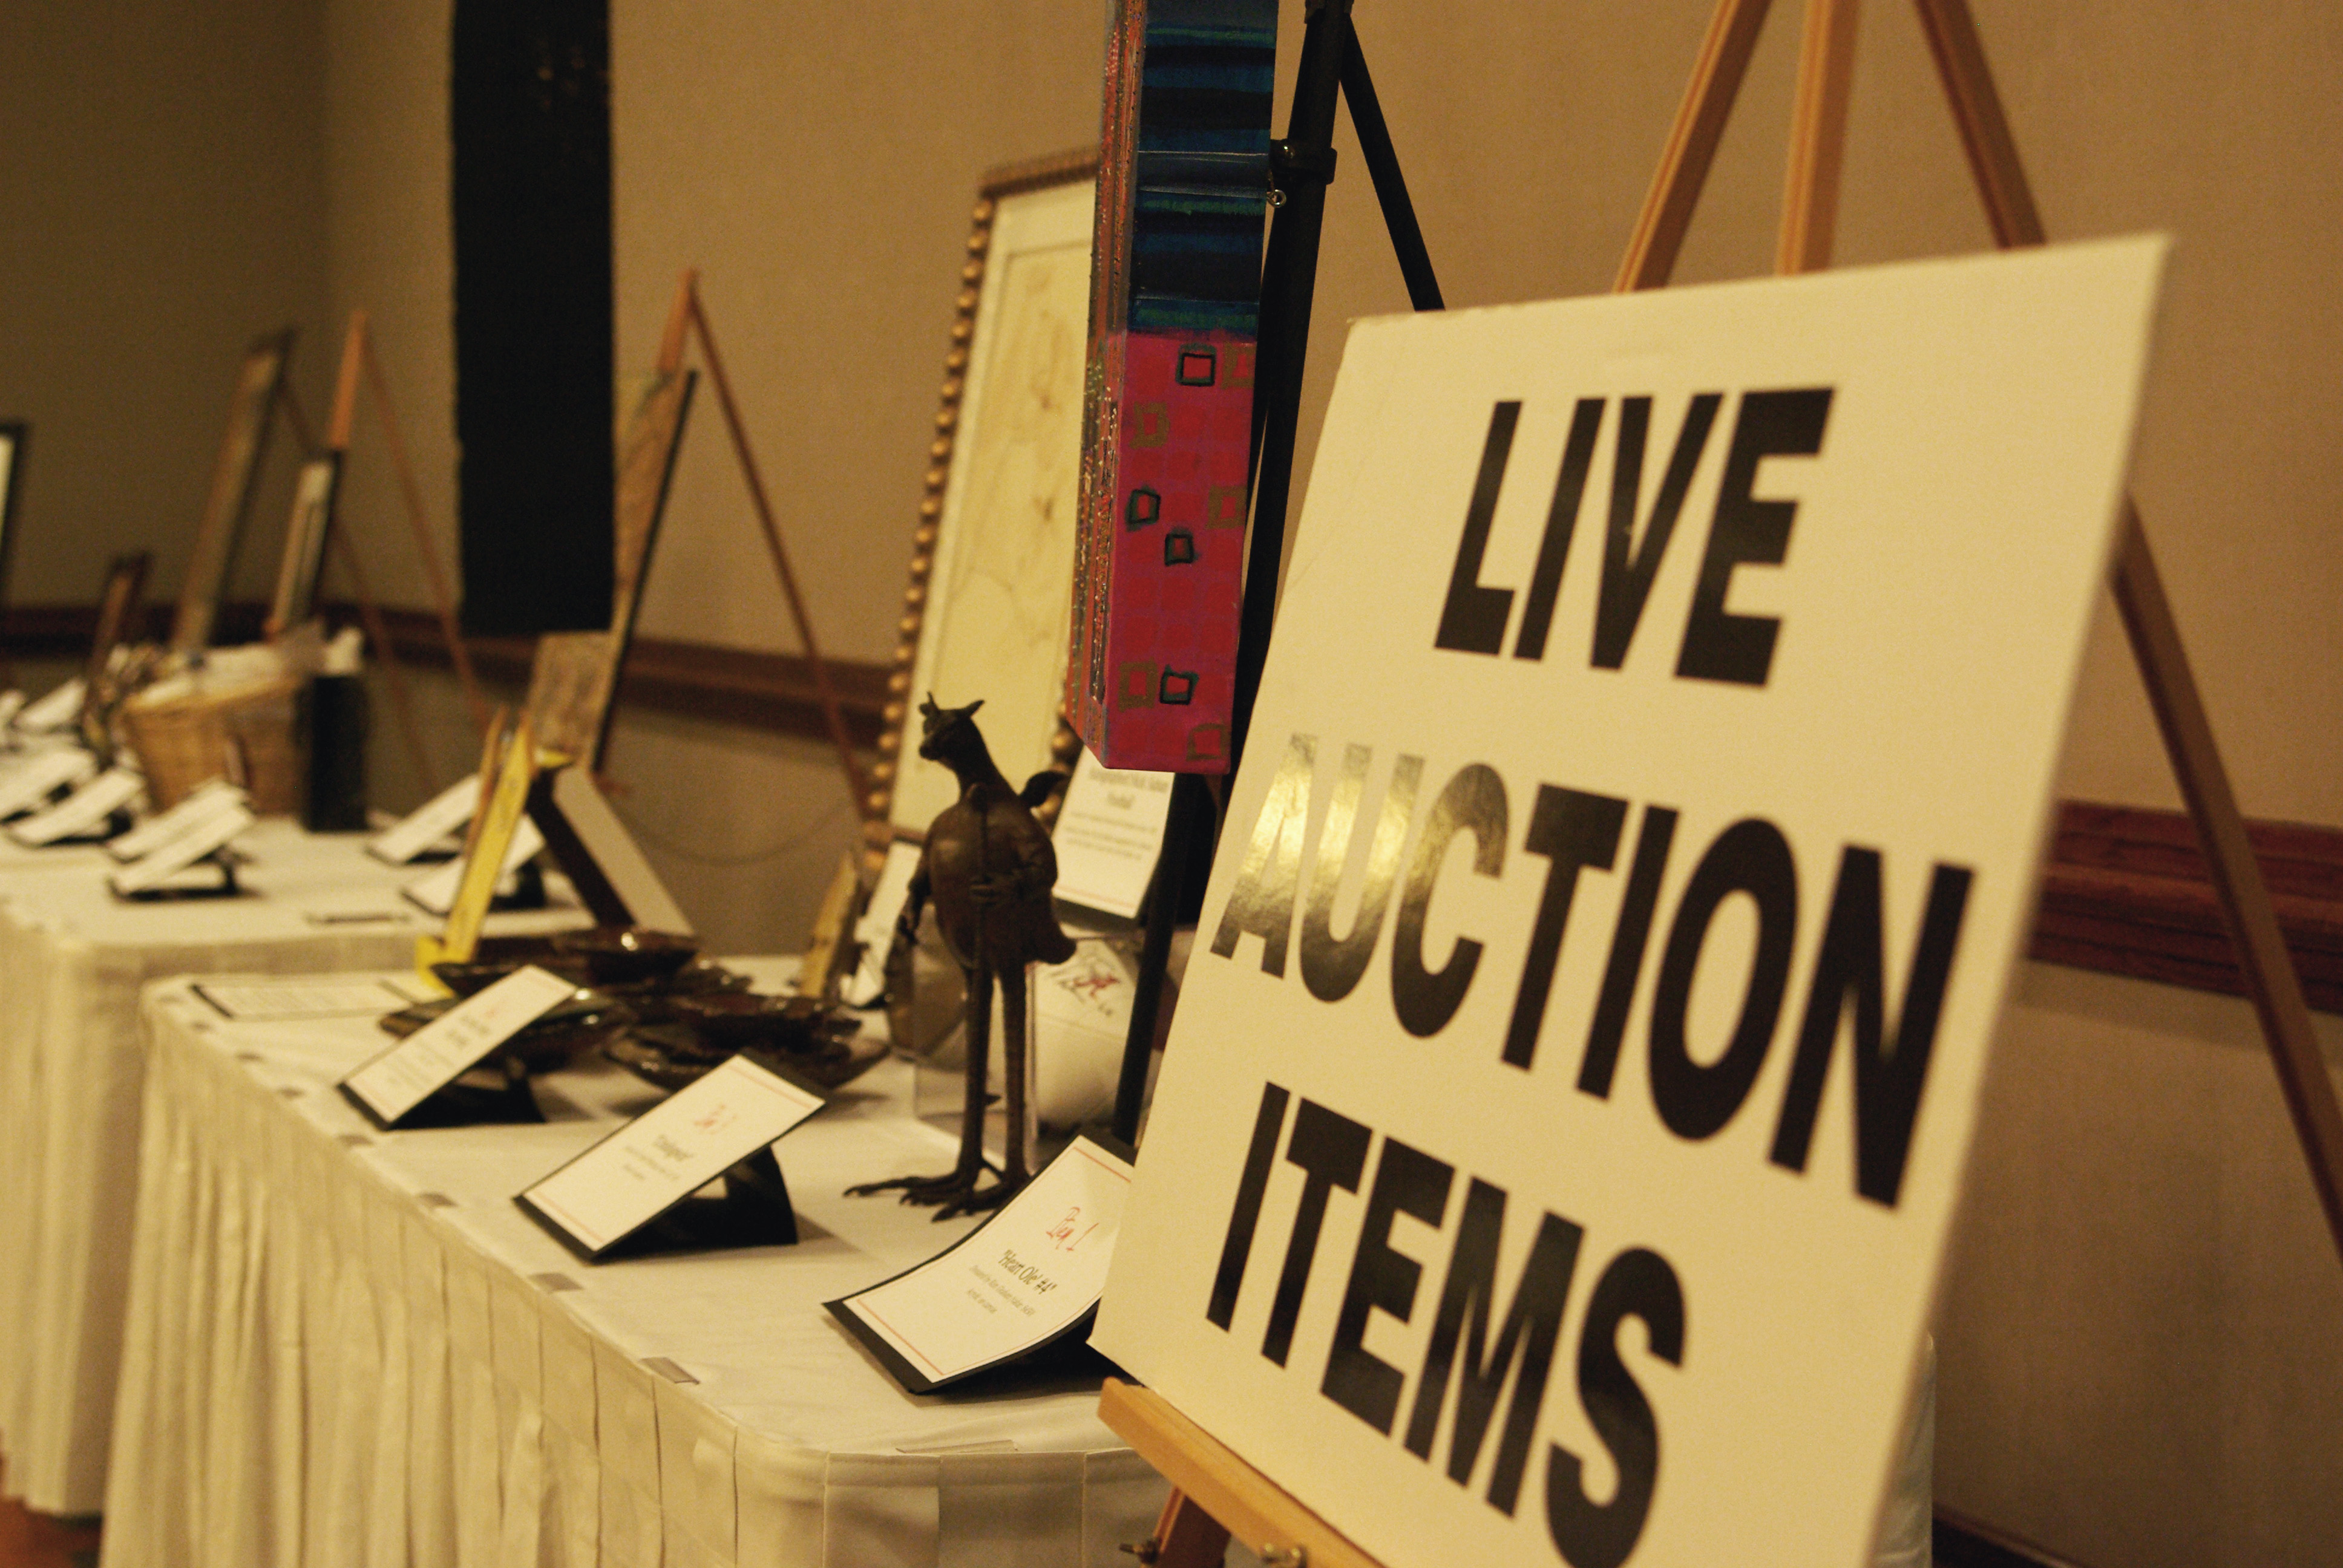 Live charity auction items